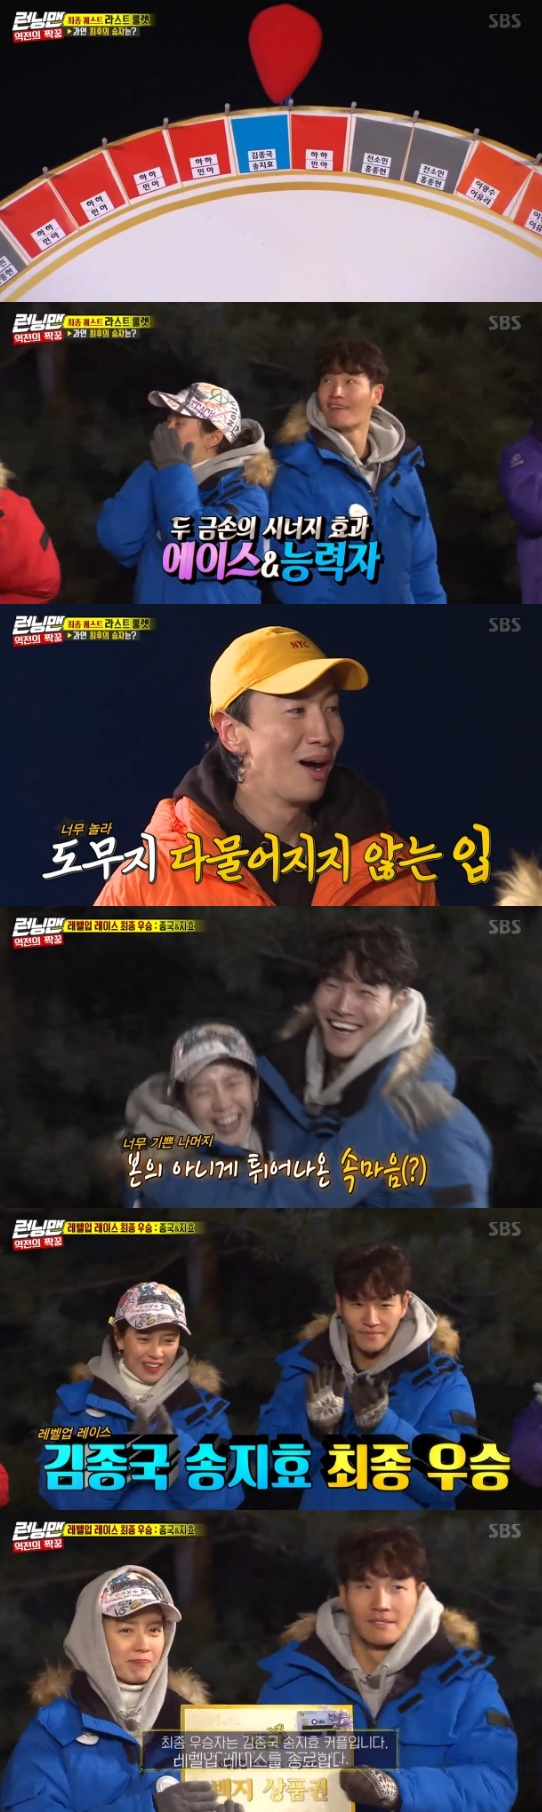 <p>The 27th broadcast SBS good Sunday - Running Manin the nation of a unique character in the amazing one of.</p><p>This day, as a guest, Lee Yoo-ri, free, win, AOA Mina and Jimin, Hong Jong Hyun has appeared. Guest on bokbulbok as from Level 1 up to 6 attached. Refinery means the level of 6 this is confirmed levels as low members information sharing already flocking to them. Even peek-a-Boo with Yoo Jae-Suk&refined oil, hard&sensitive, both for dinner&Jimin, Min&Hong Jong-Hyun, Suk Jin&win, Lee Kwang-Soo&Lee Yoo-ri even peek-a-Boo.</p><p>This Race is a level up the couples Race, a total of two times of the secret. Every round the No. 1 couples 2 Level, 2 for couples is a 1 level gain. At Level 10 you win the championship. However, the missions until the end of Level 10 if you do not have the final winner is the roulette to decide.</p><p>The first couple Quest game stood or balloons on the opponent, the couples balloon popping had to. Their stamina is depleted situations. In the finals Lee Kwang-Soo&Lee Yoo-ri with Kim Jong-kook&Song Ji-hyo to win and win. 1 for this a Level 0 from Level 2 have a laugh, I found myself. 2 for the one Kim Jong-kook&Song Ji-hyo is a Level 1 raise, it was, and Kim Jong-kook is the Song Ji-hyo in the concessions.</p><p> The last quest is a level-up chair great. A couple of chairs in snatch showdown within the time limit, the scattered the doctor to find Seating. However, every round after the end of the Survive a couple of votes for the election and, for one couple to be eliminated.</p><p>In Round 1, ago Min&Hong Jong Hyun is the first chair both more comfortable&Jimin sing, but I two people of a bracelet broke. Ago small another paired peek-a-Boo them, I went looking for, and the bracelet is broken Yoo Jae-Suk&essential oil of sat down. Yoo Jae-Suk&refinery means that the analysis&wins headed, but the bracelet broke not was eliminated. 1 round for couples is silly&Win, Min&Hong Jong-Hyun to drop out.</p><p>Round 2 in Lee Kwang-Soo&Lee Y